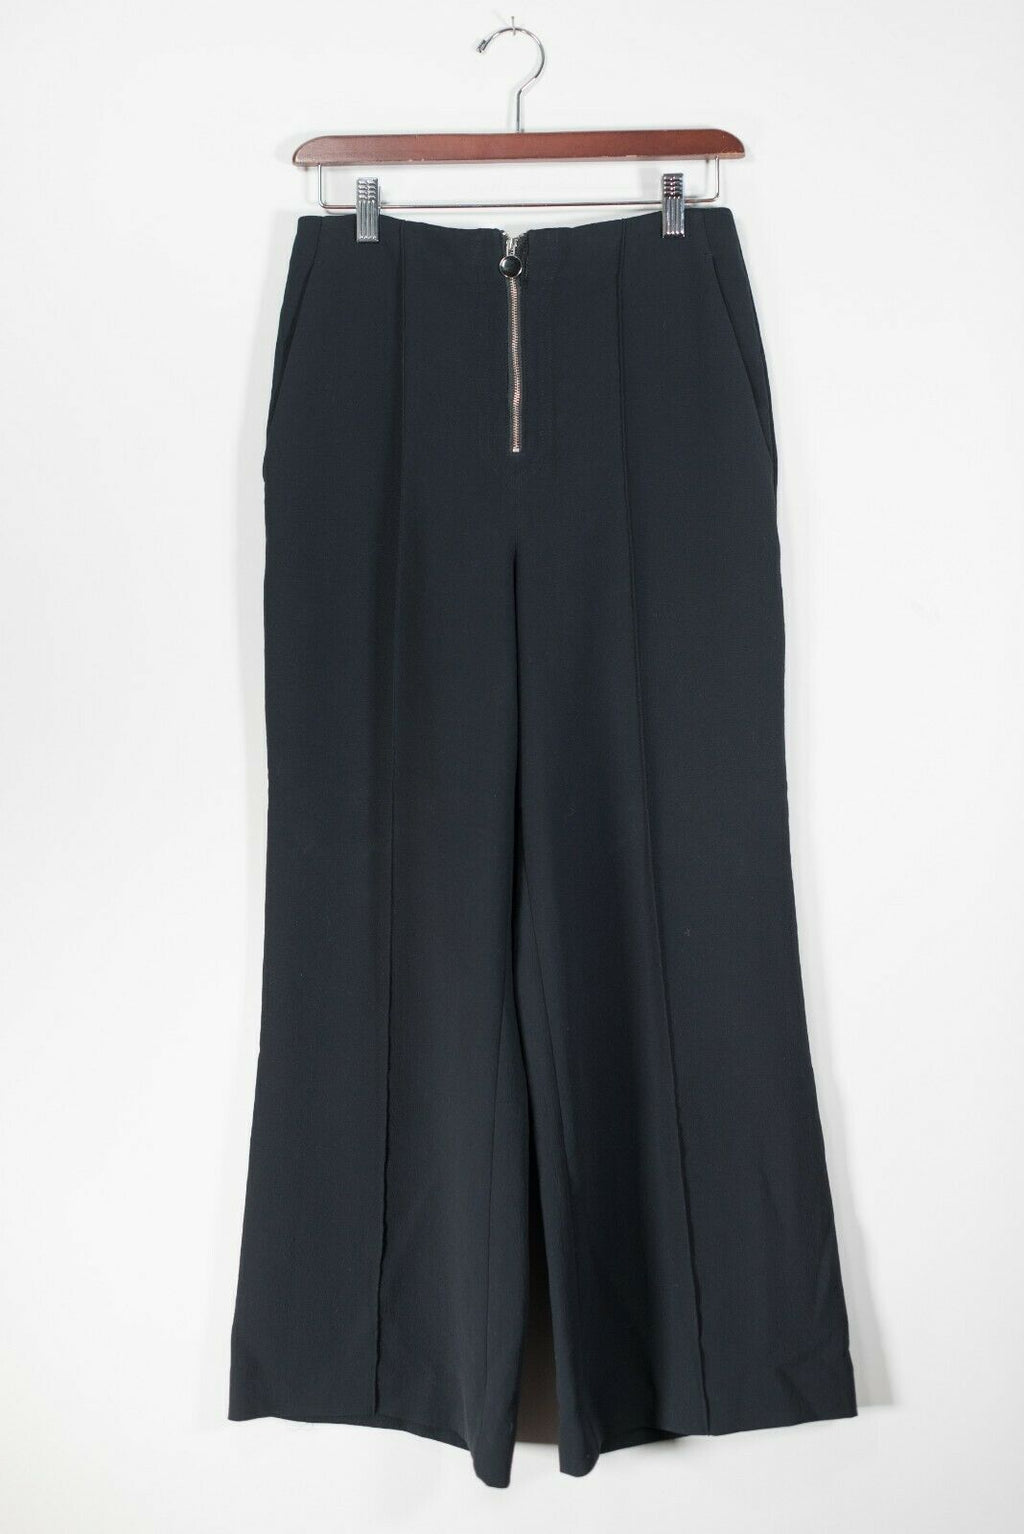 Aritzia Wilfred Women's Size 4 Black Pants Wide Leg Zipper Front Crepe Trousers